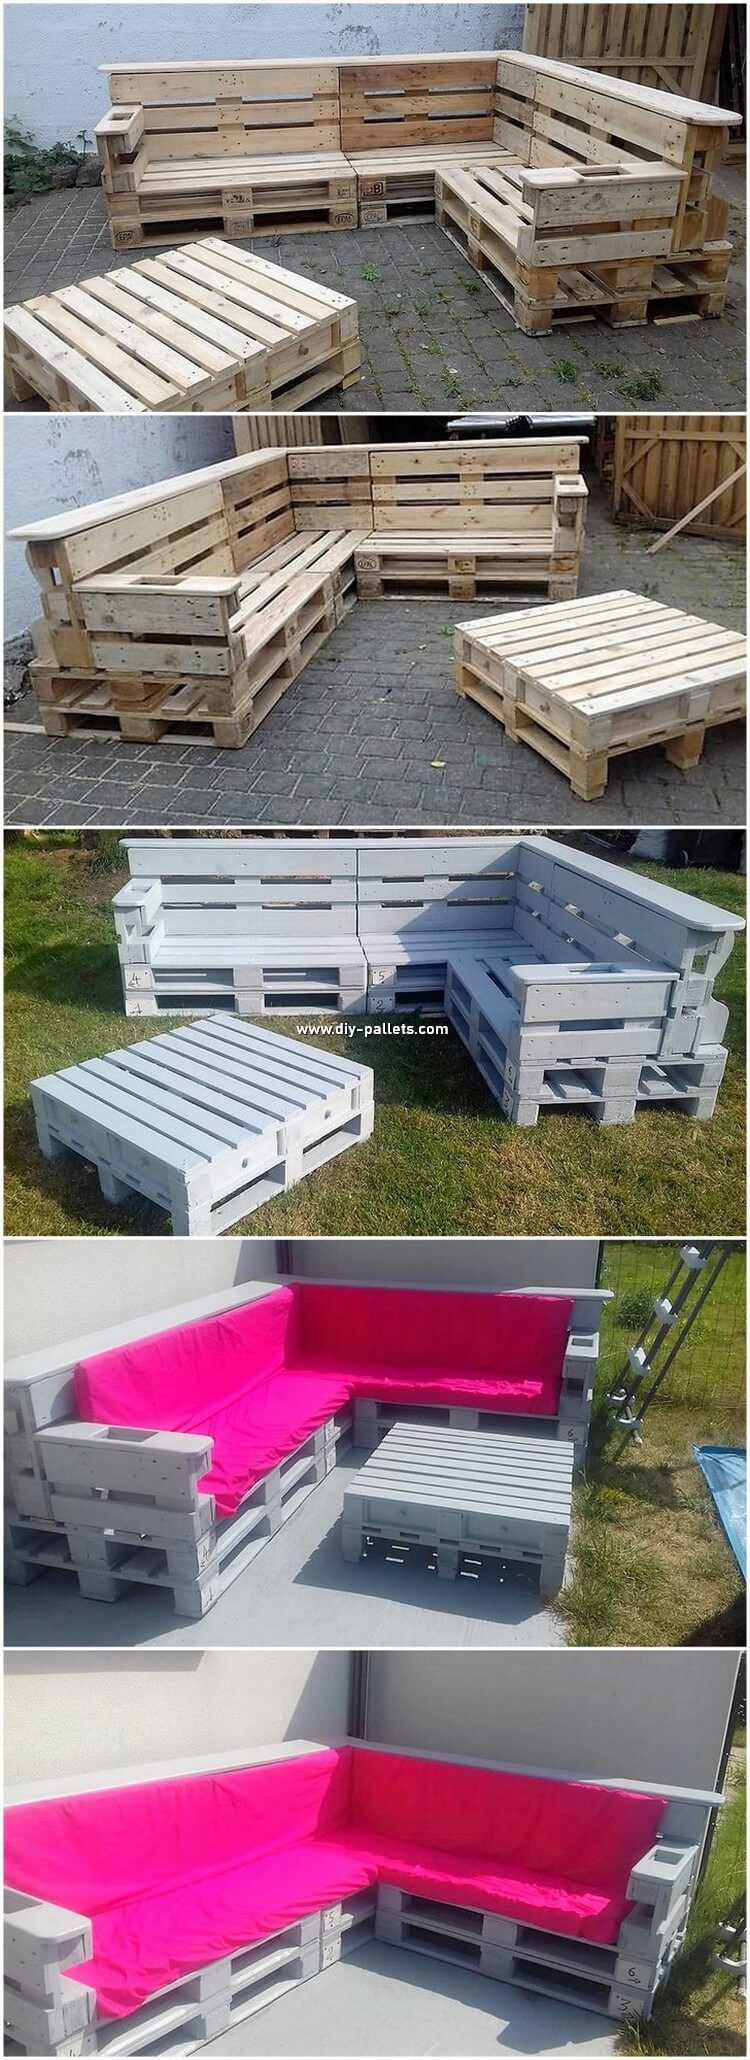 DIY Pallet Garden Couch and Table